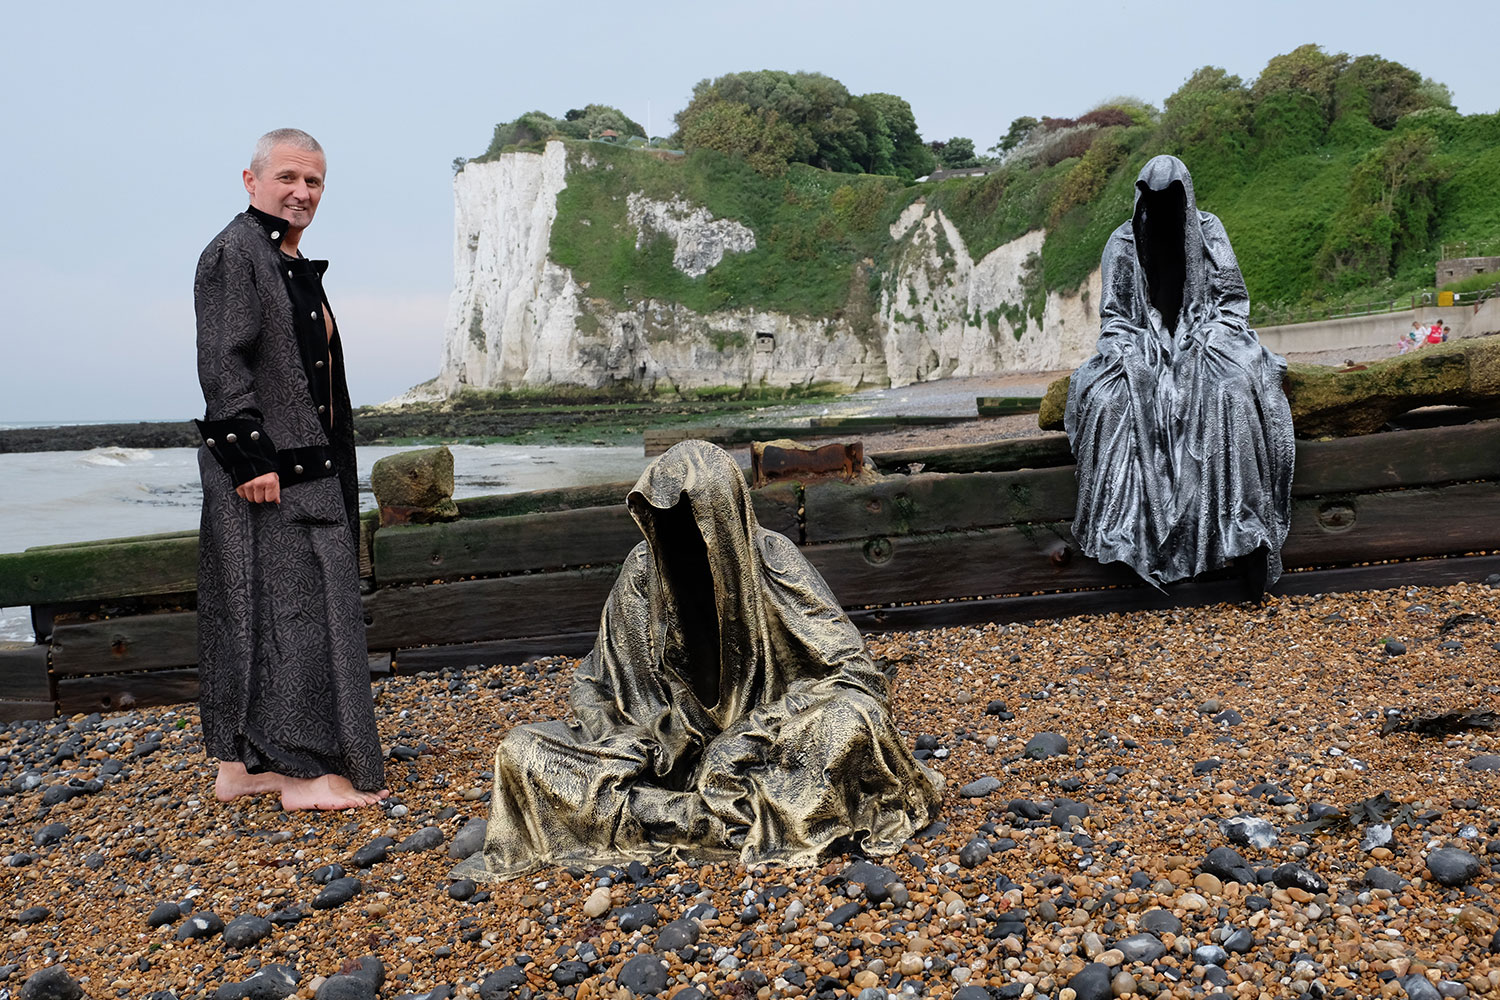 guardians-of-guardians-of-time-manfred-kili-kielnhofer-uk-england-dover-public-contemporary-art-arts-design-sculpture-6470y